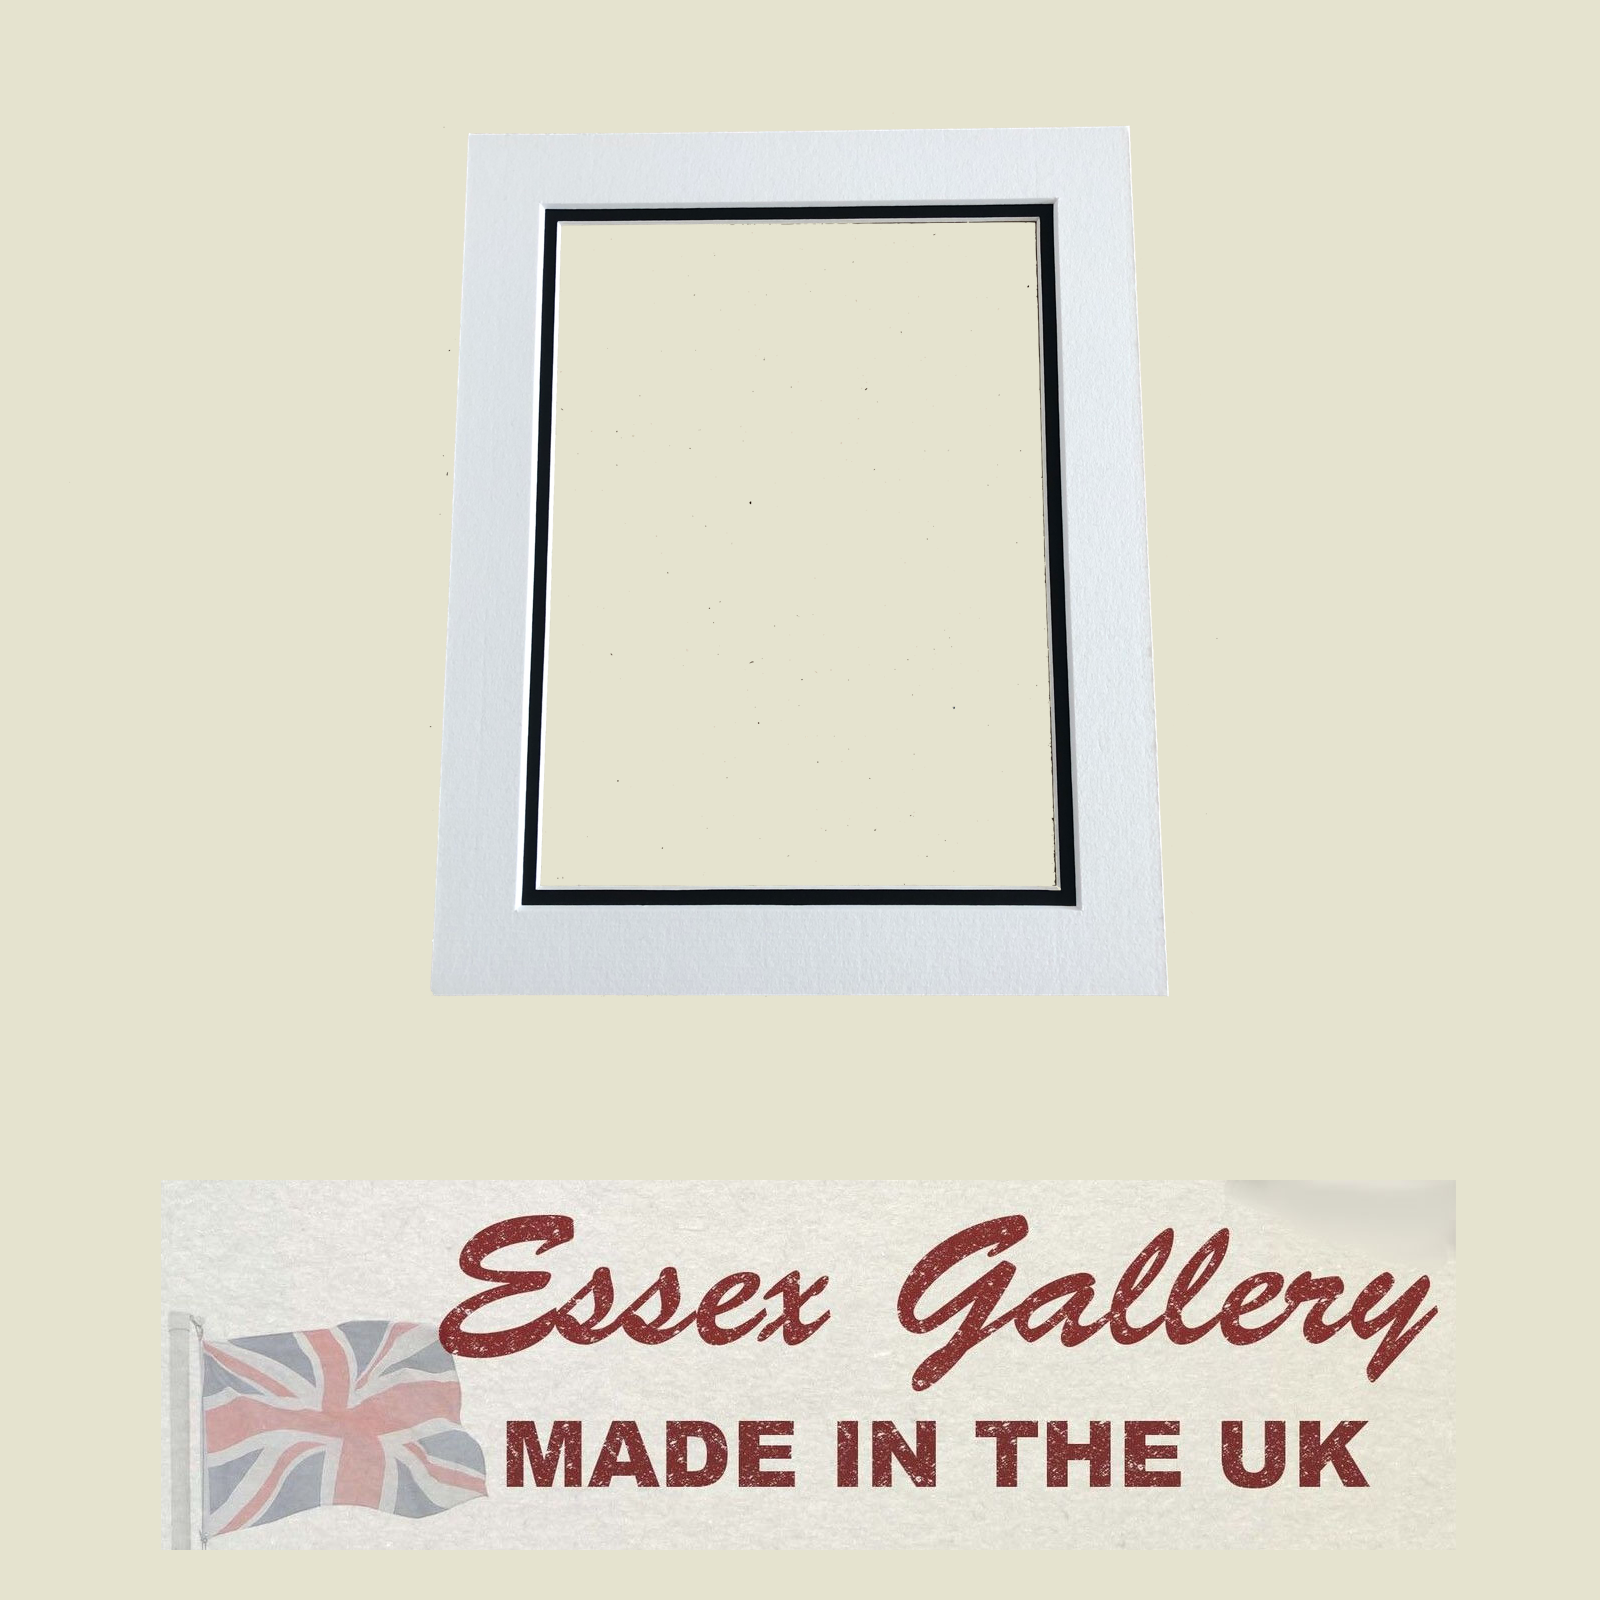 Bespoke Picture & Photo Frame Double Mounts - Cut to Any Size (Max Size 20x16) 2